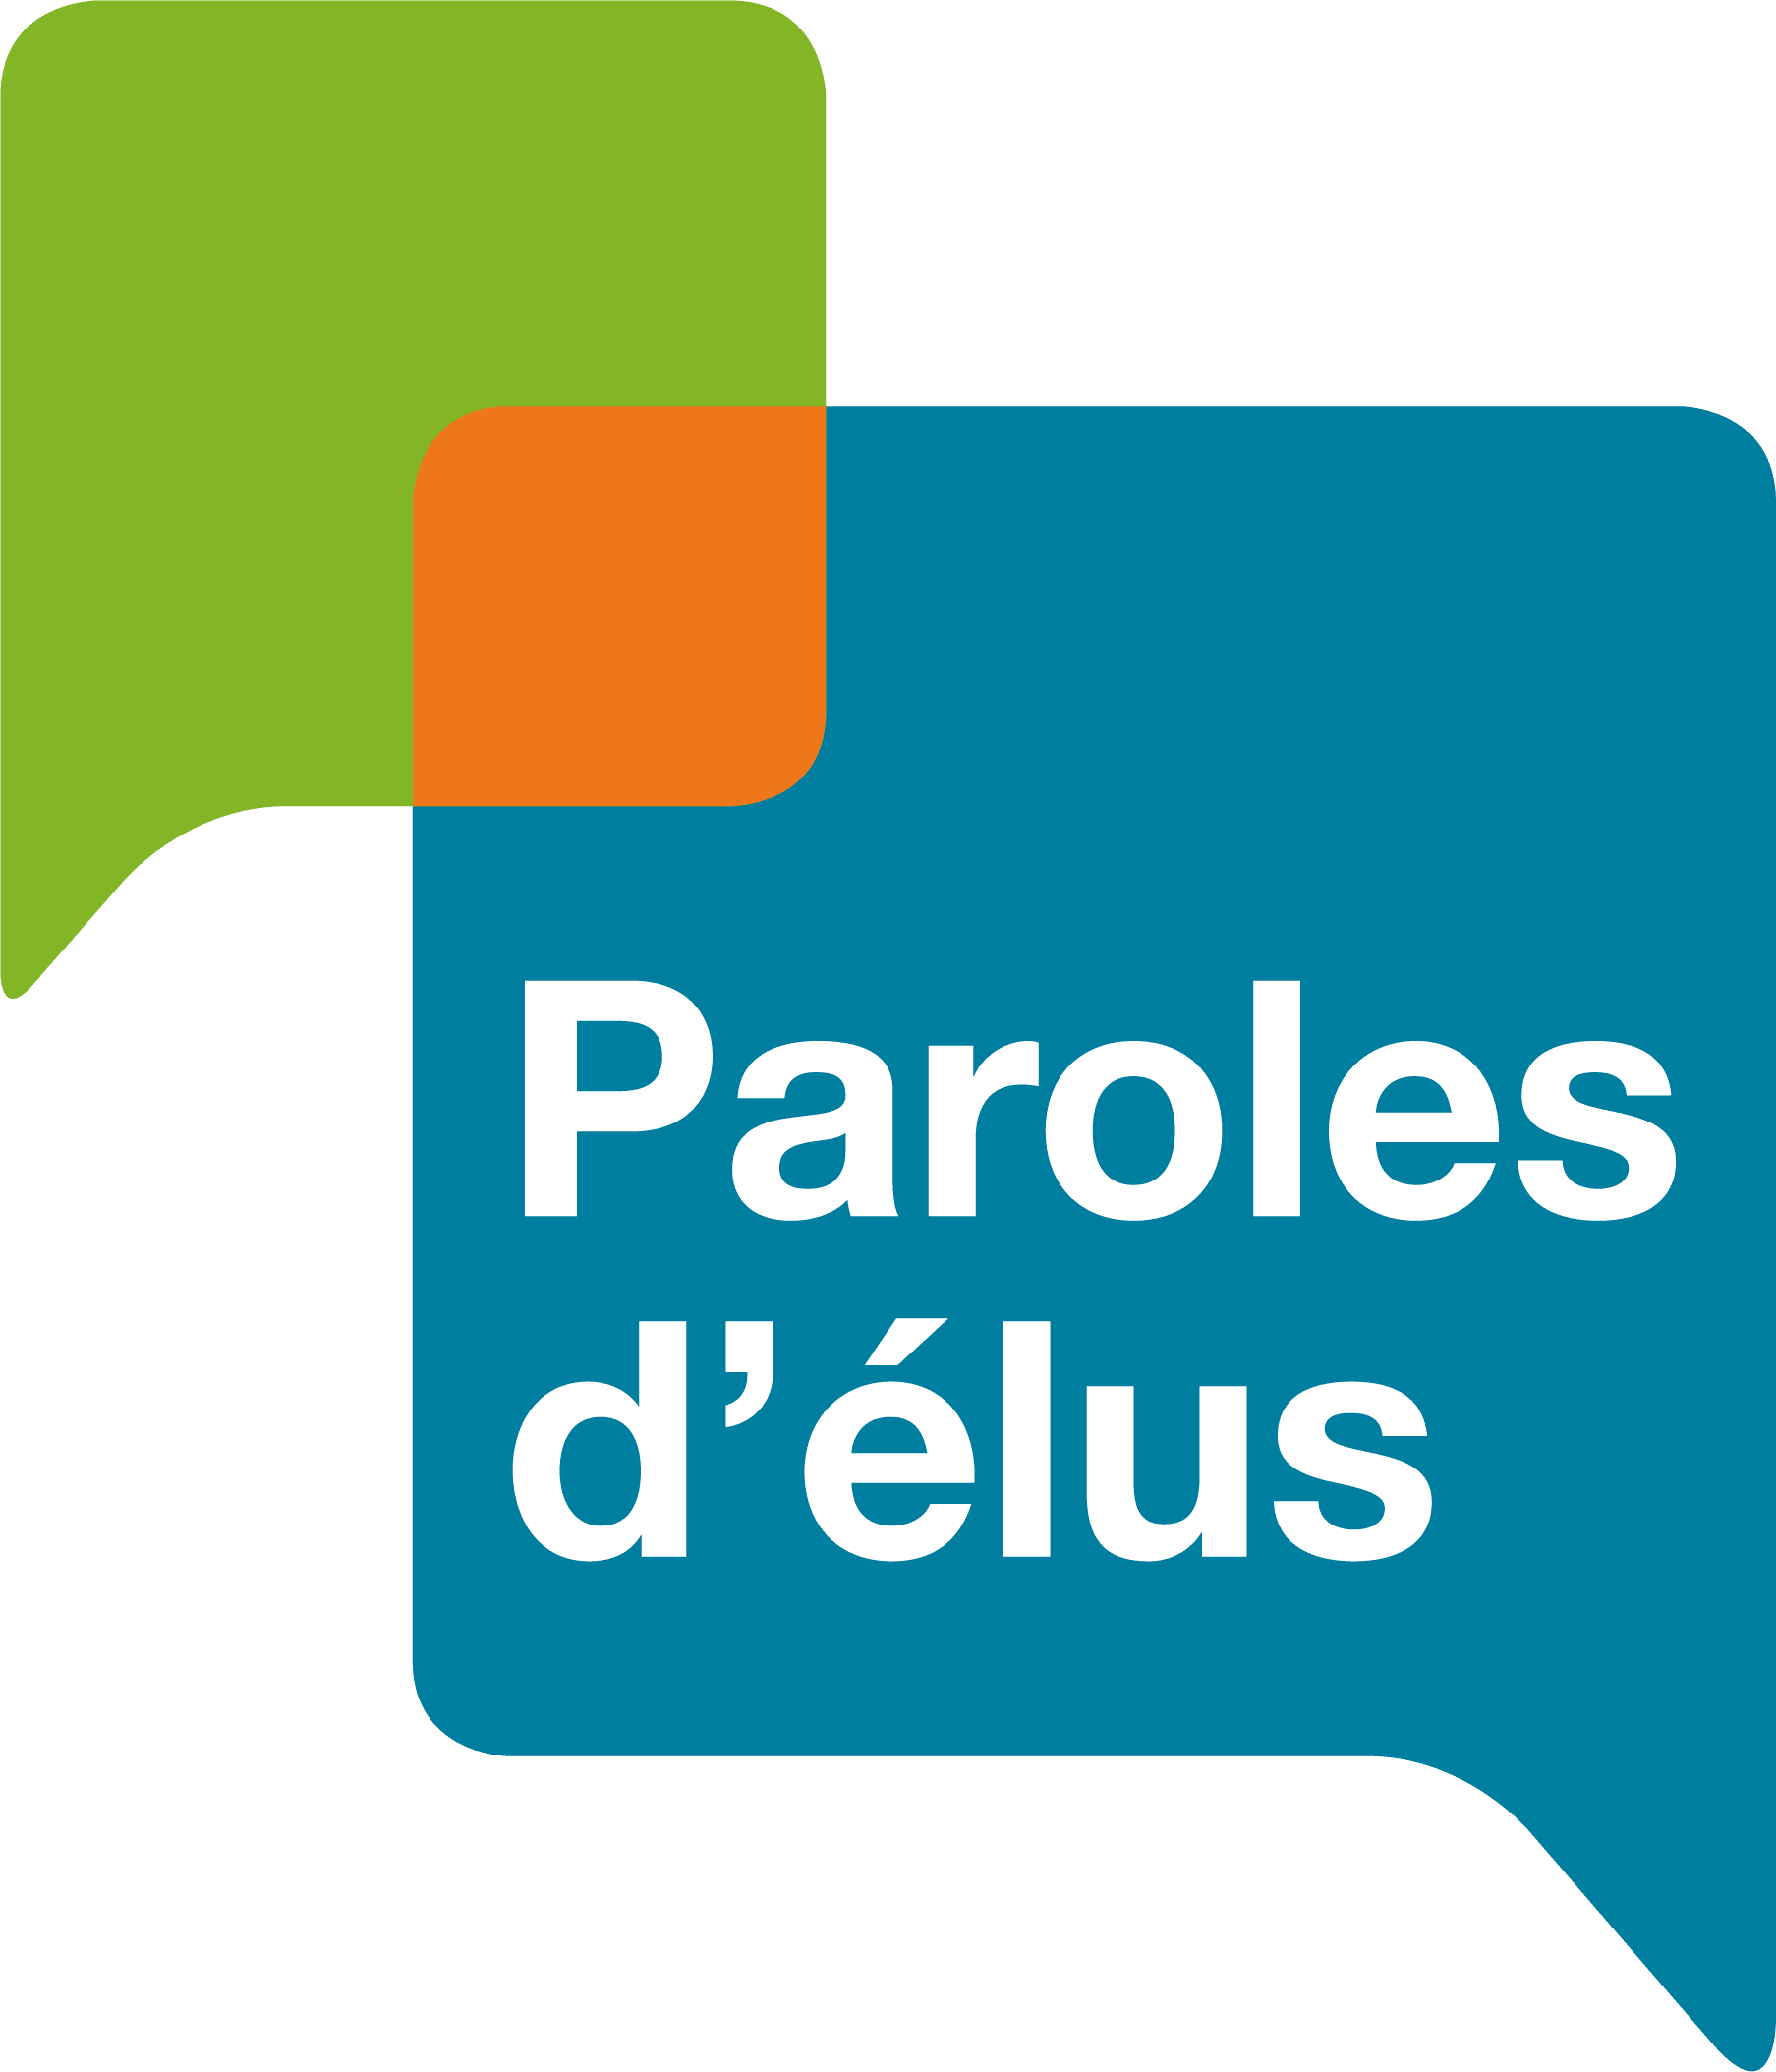 Paroles d'ELus